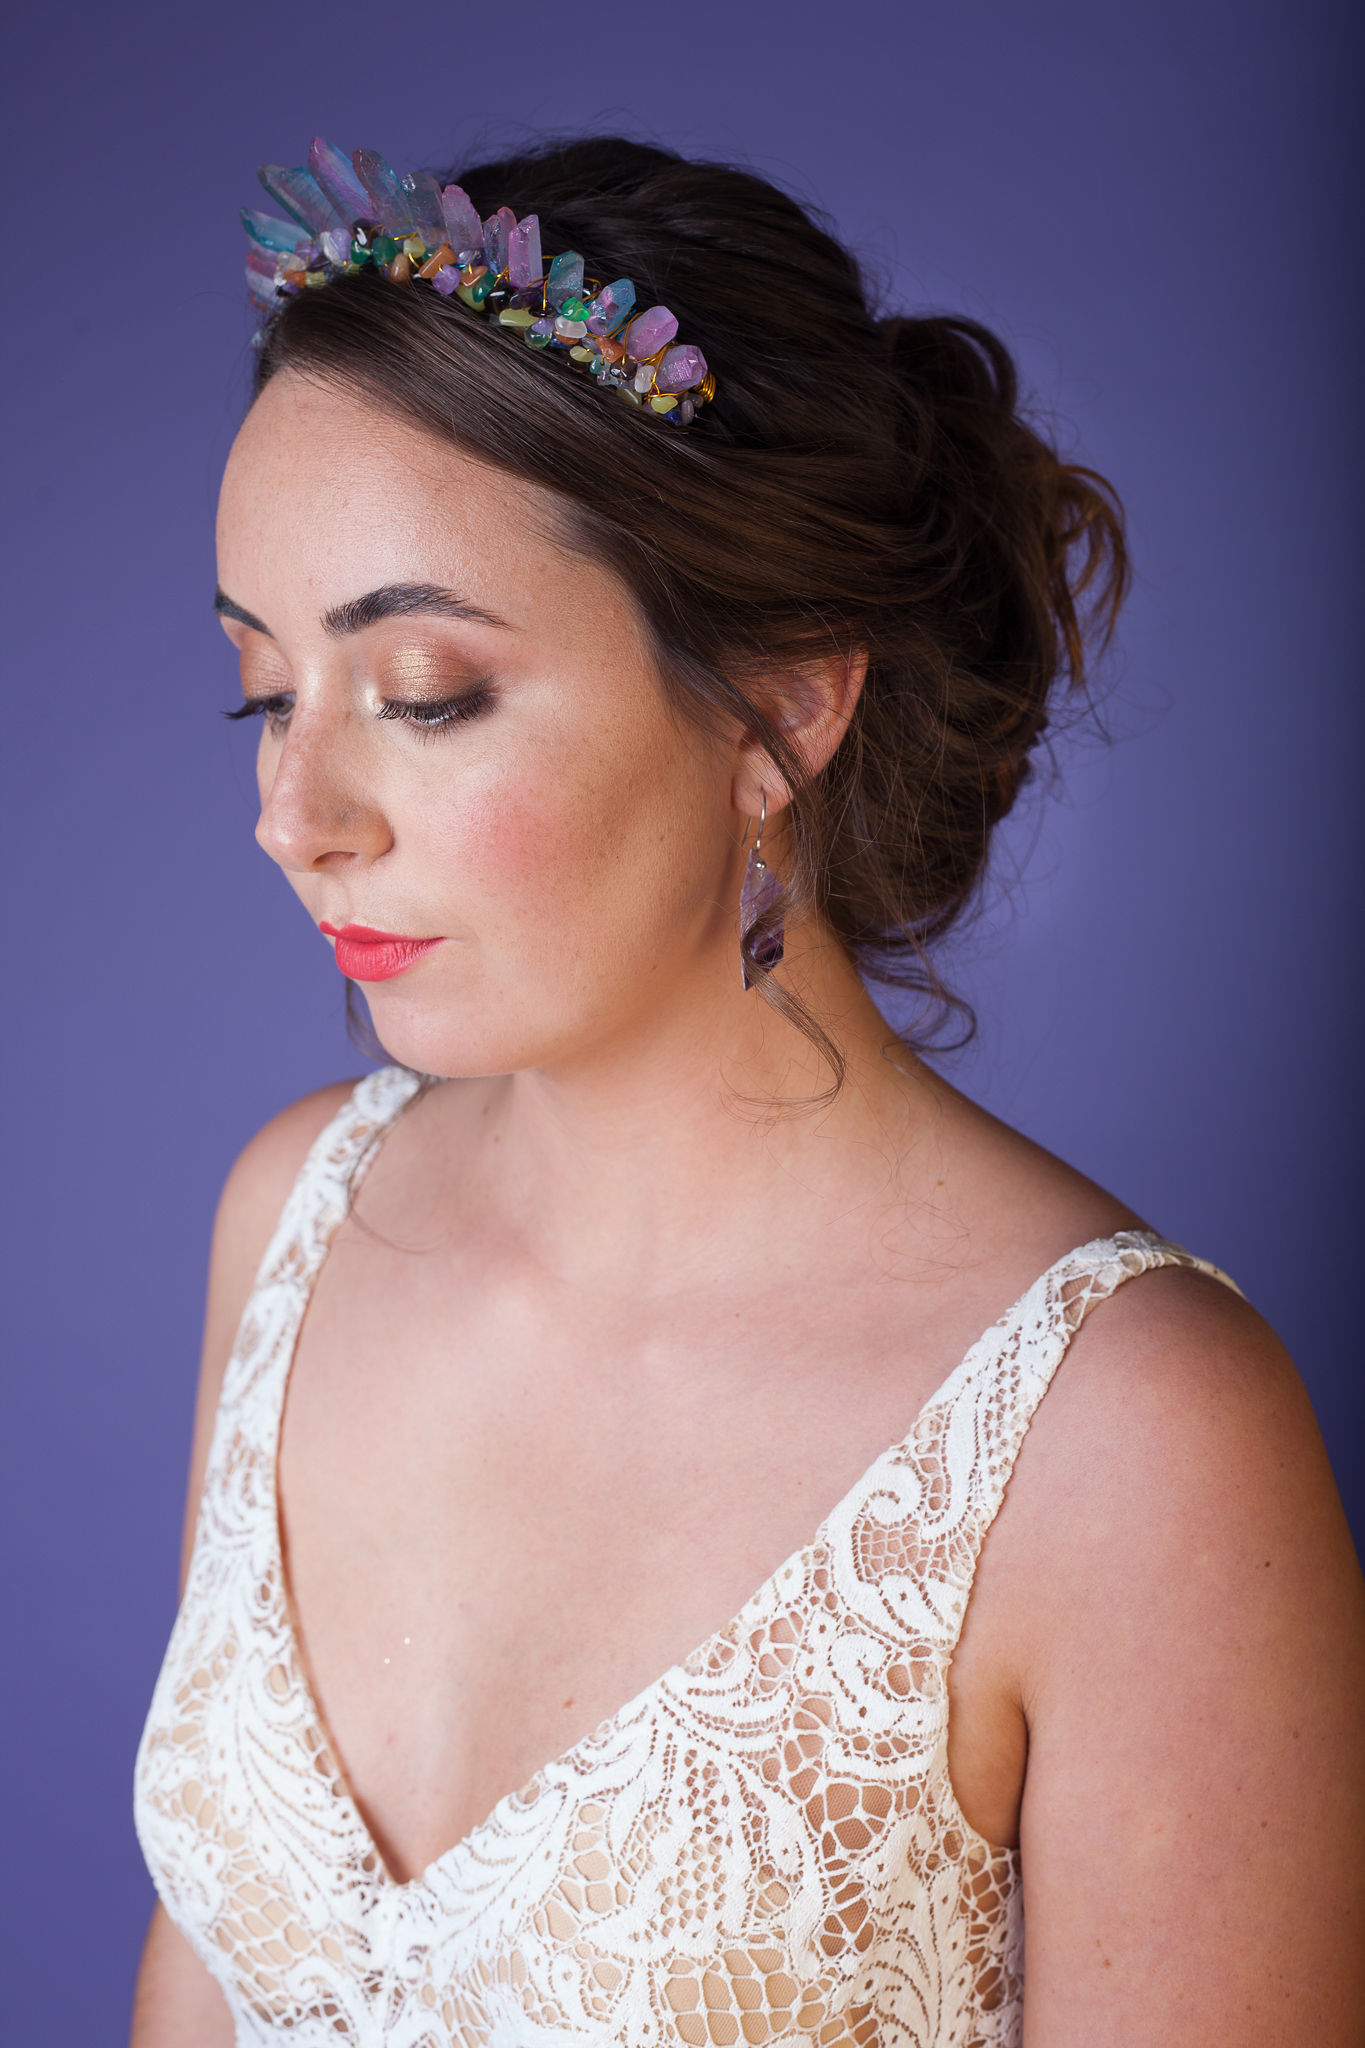 Abundance crystals- colourful wedding- headband